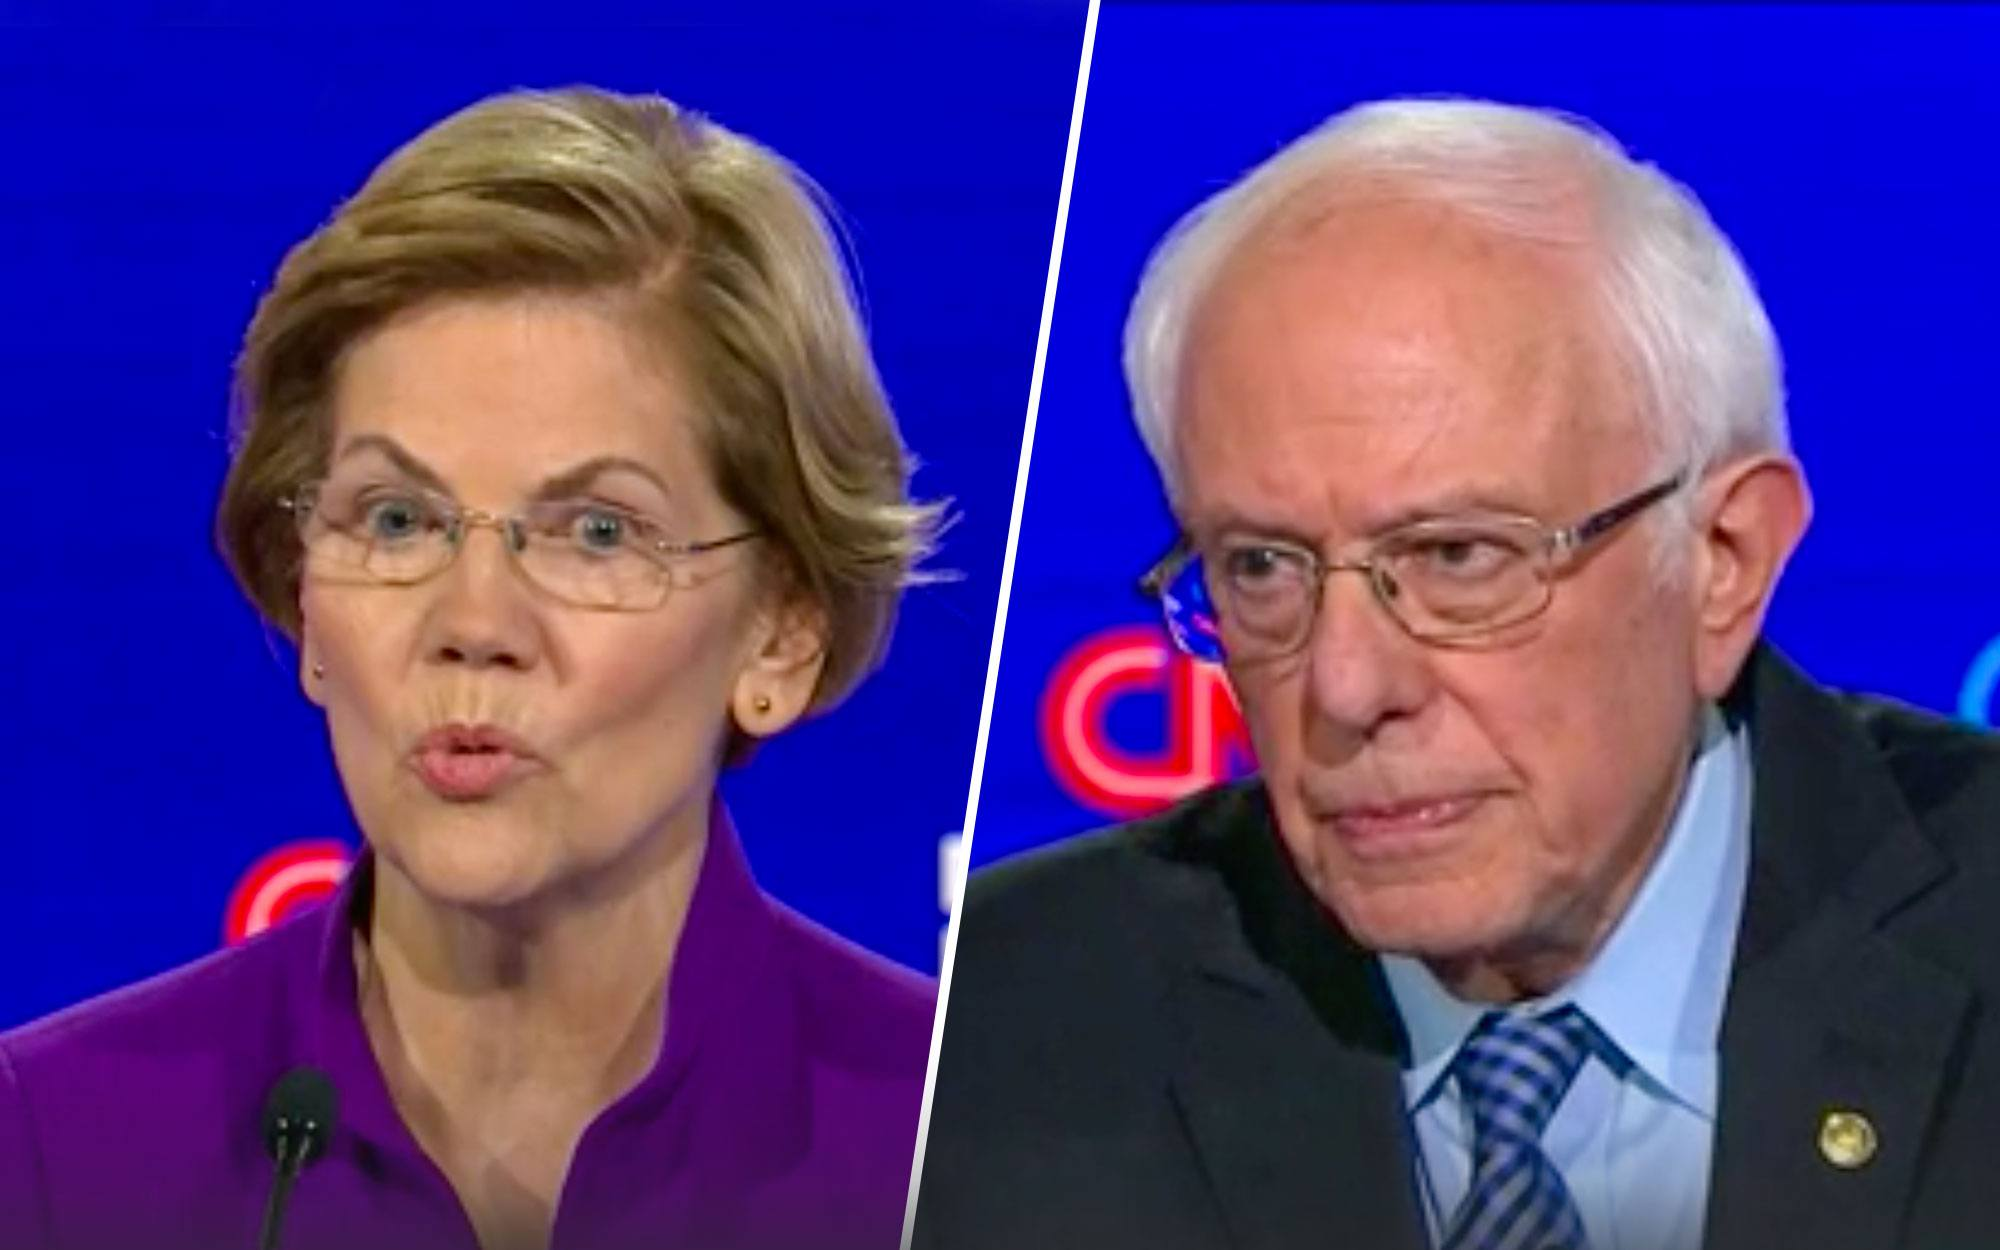 VIDEO: Warren and Sanders Battle It Out After Debate